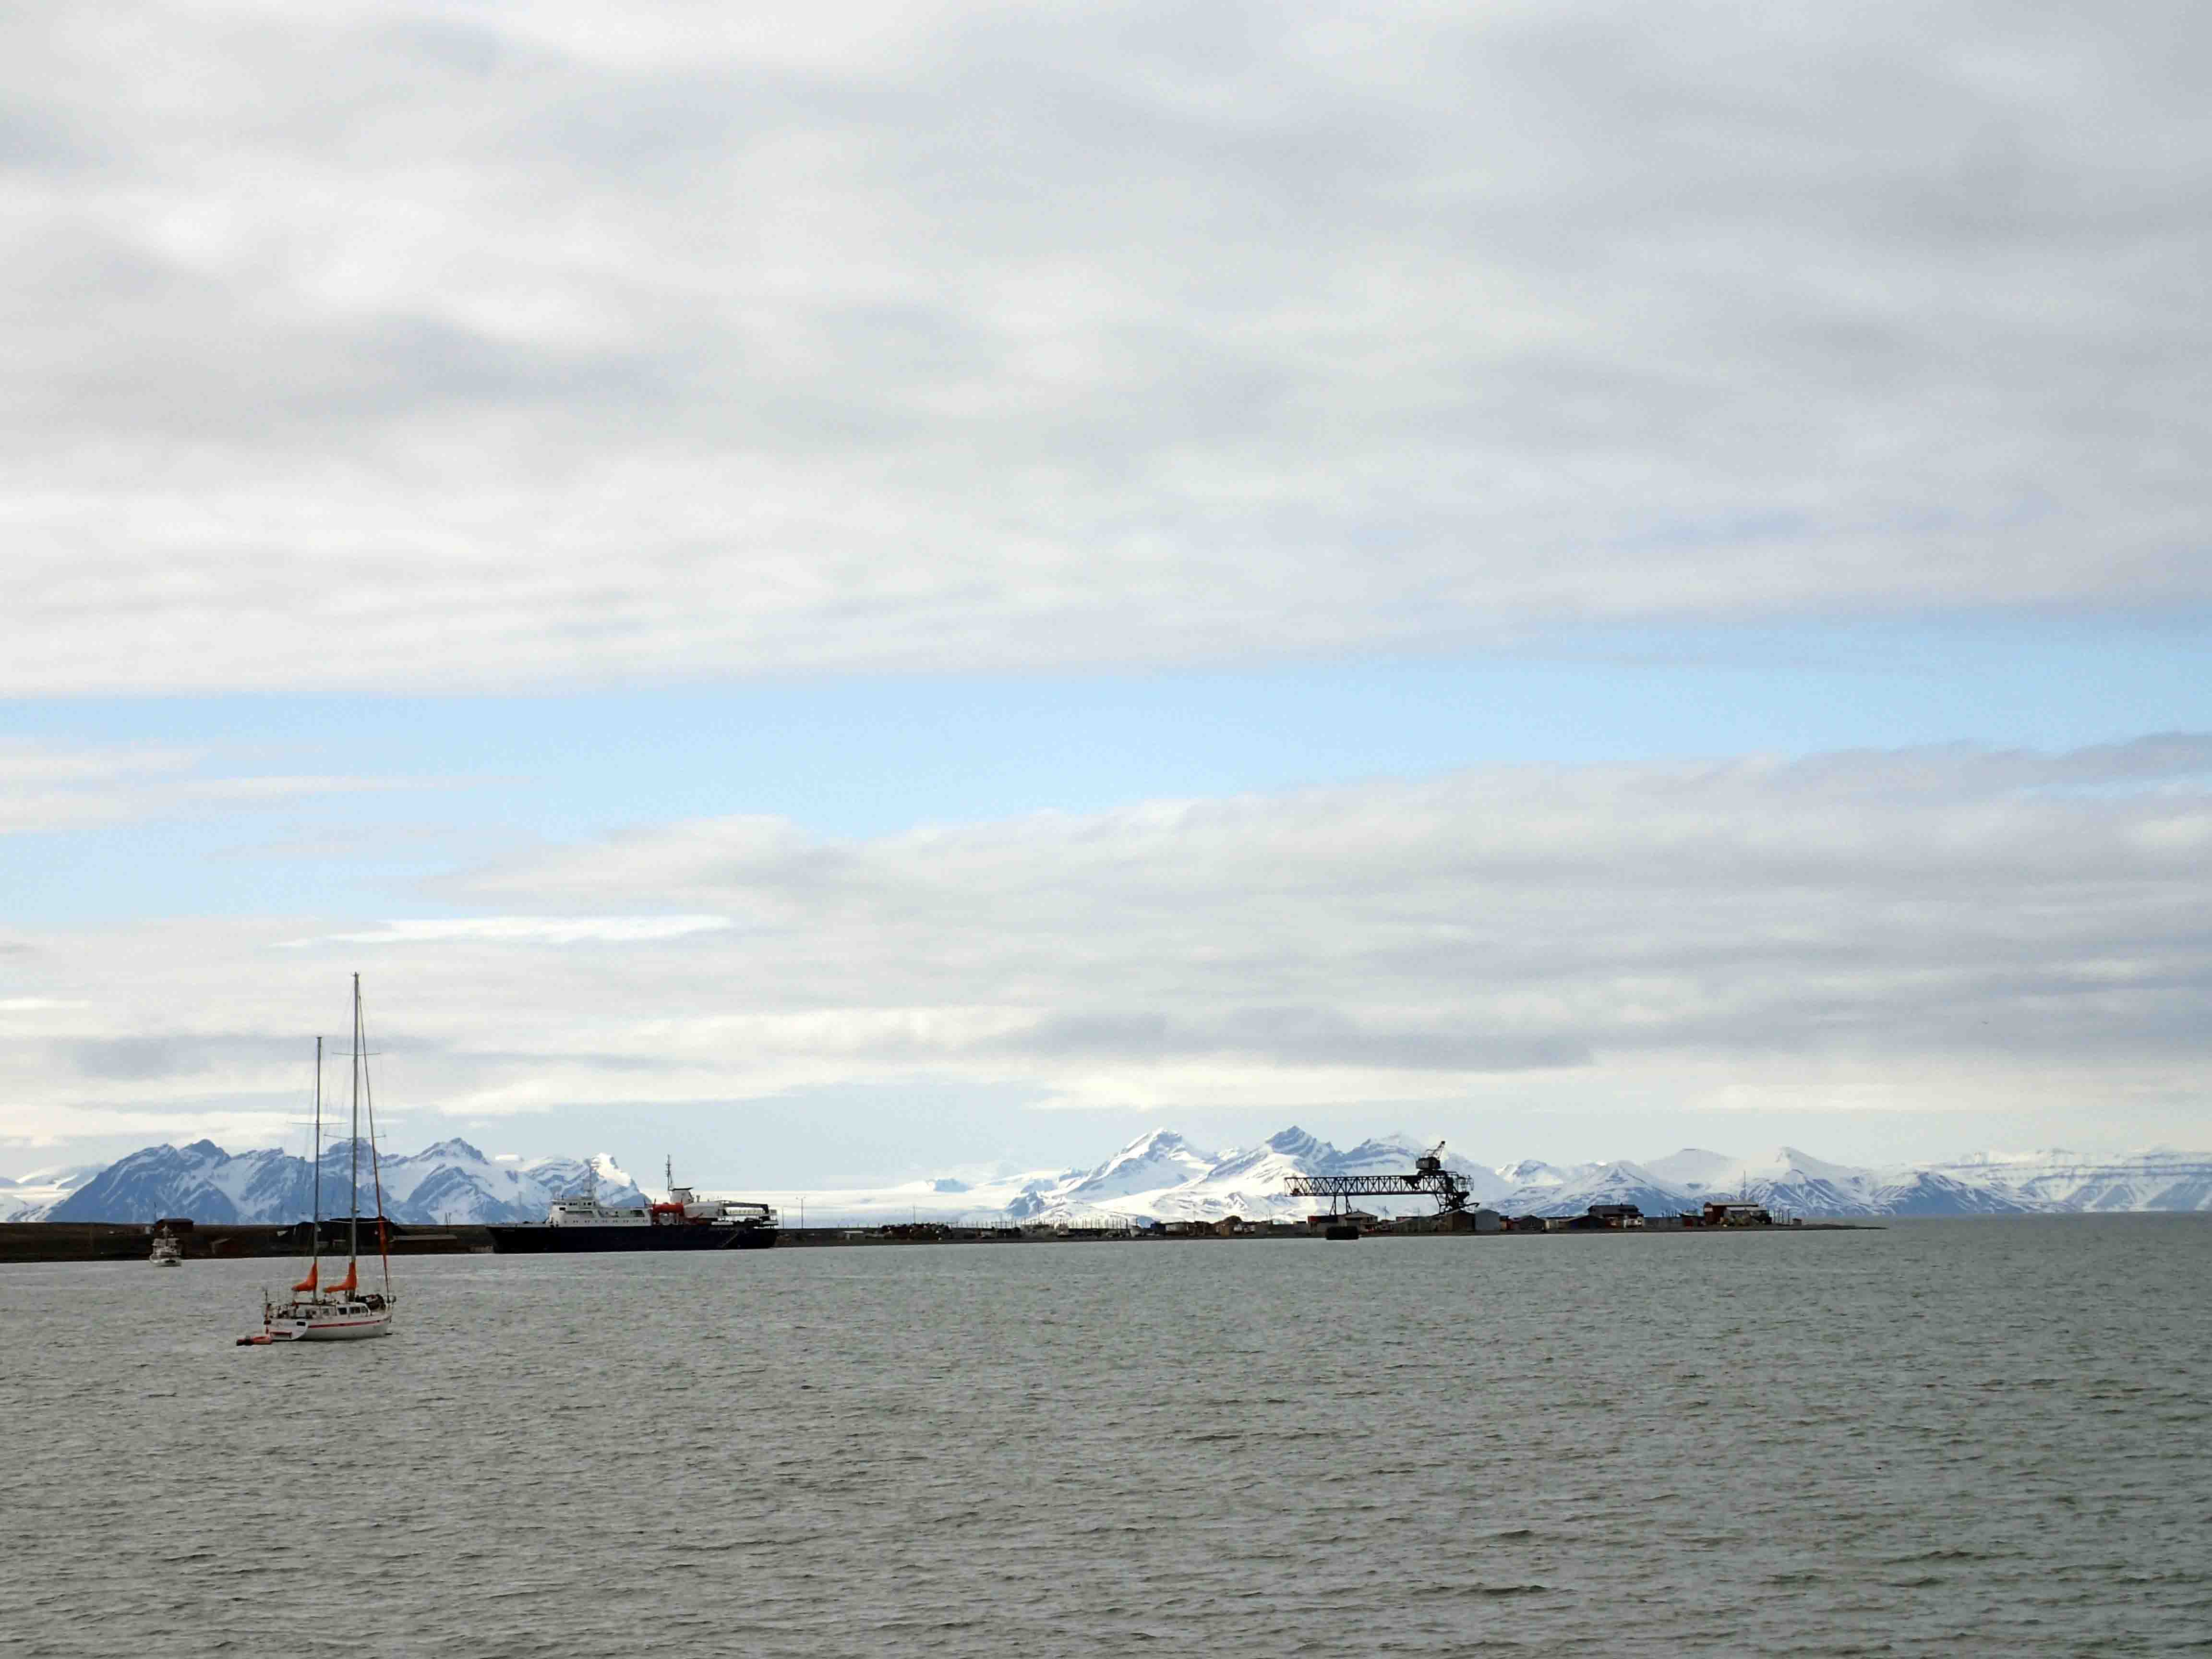 view of harbor in Longyearbyen, Spitsbergen